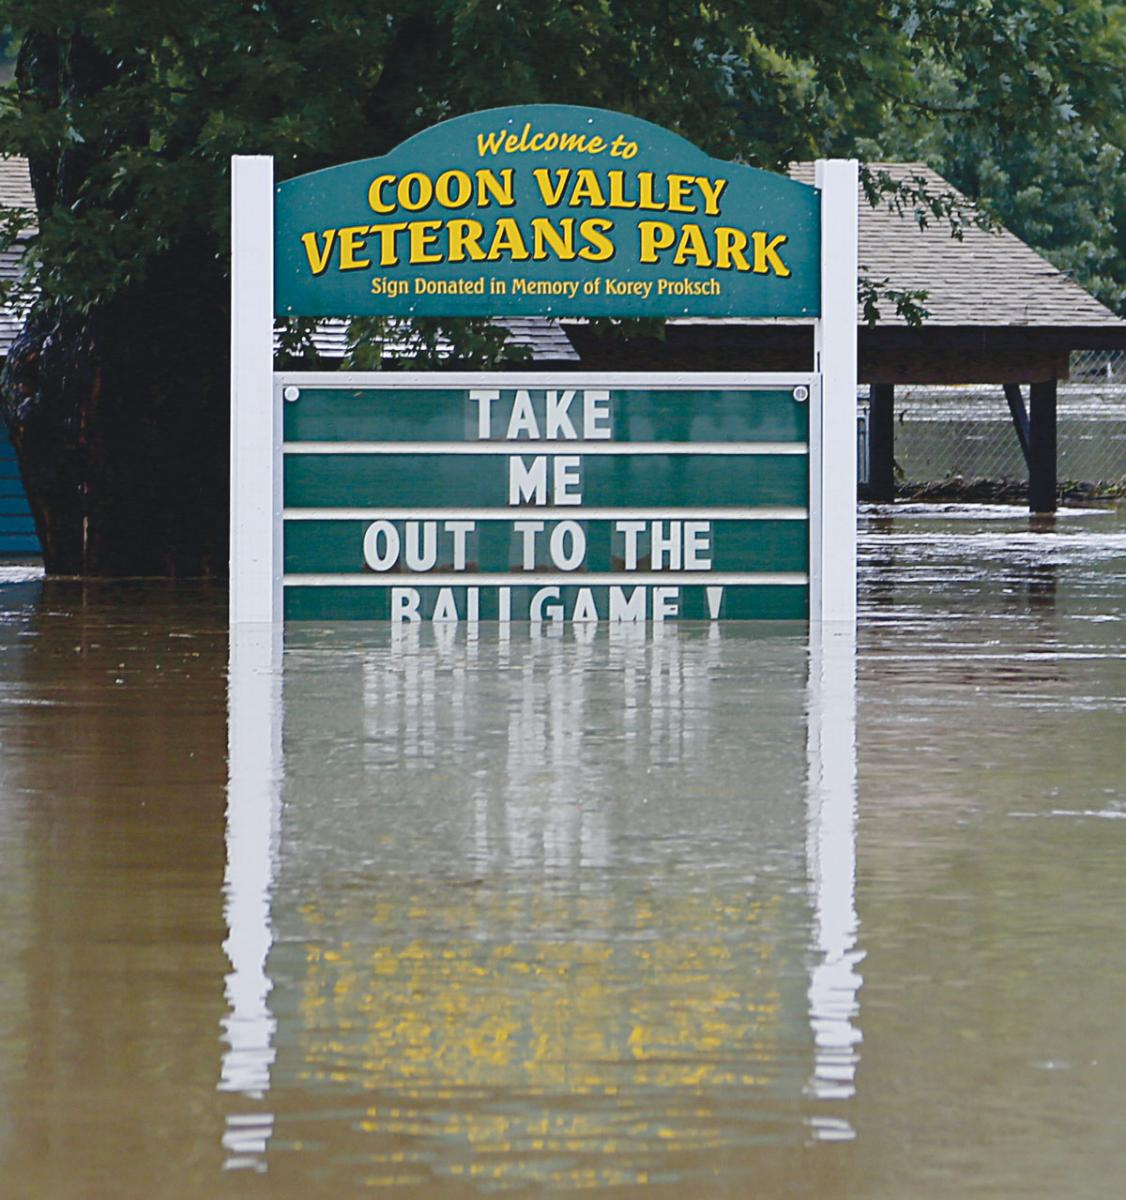 The Coon Valley Village Park was completely submerged by flash flood waters during the flooding of August 27 and 28, 2018. Photo by Jon Lee.